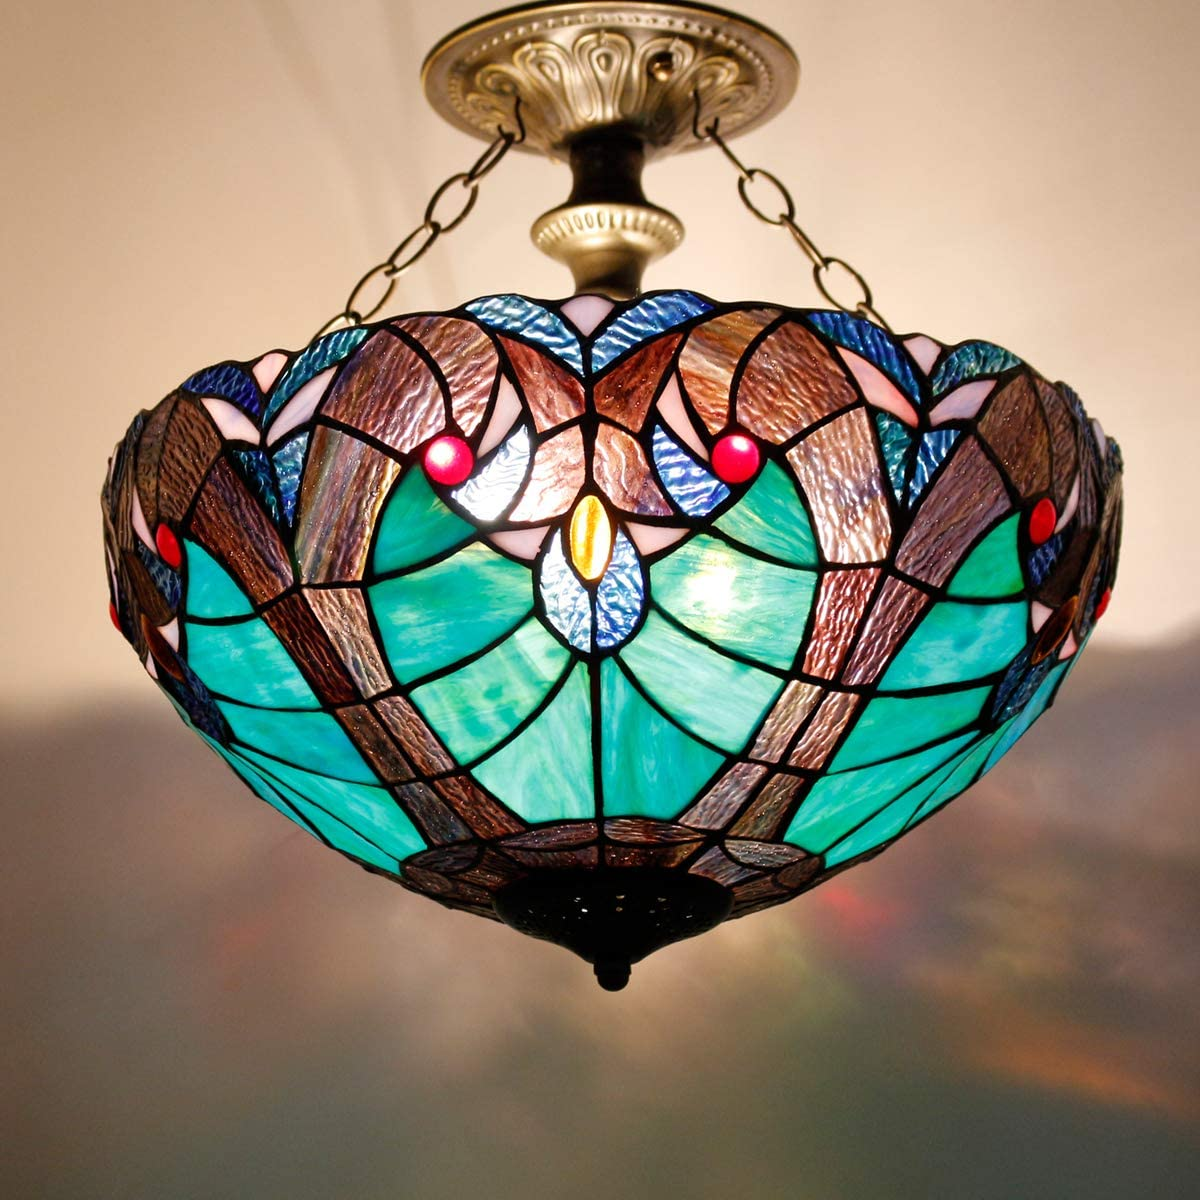 Tiffany Ceiling Fixture Lamp Semi Flush Mount 16 Inch Green Liaison Stained Glass Lampshade Pendant Hanging 2 Light Fixture for Dinner Room Living Room Bedroom S160G WERFACTORY